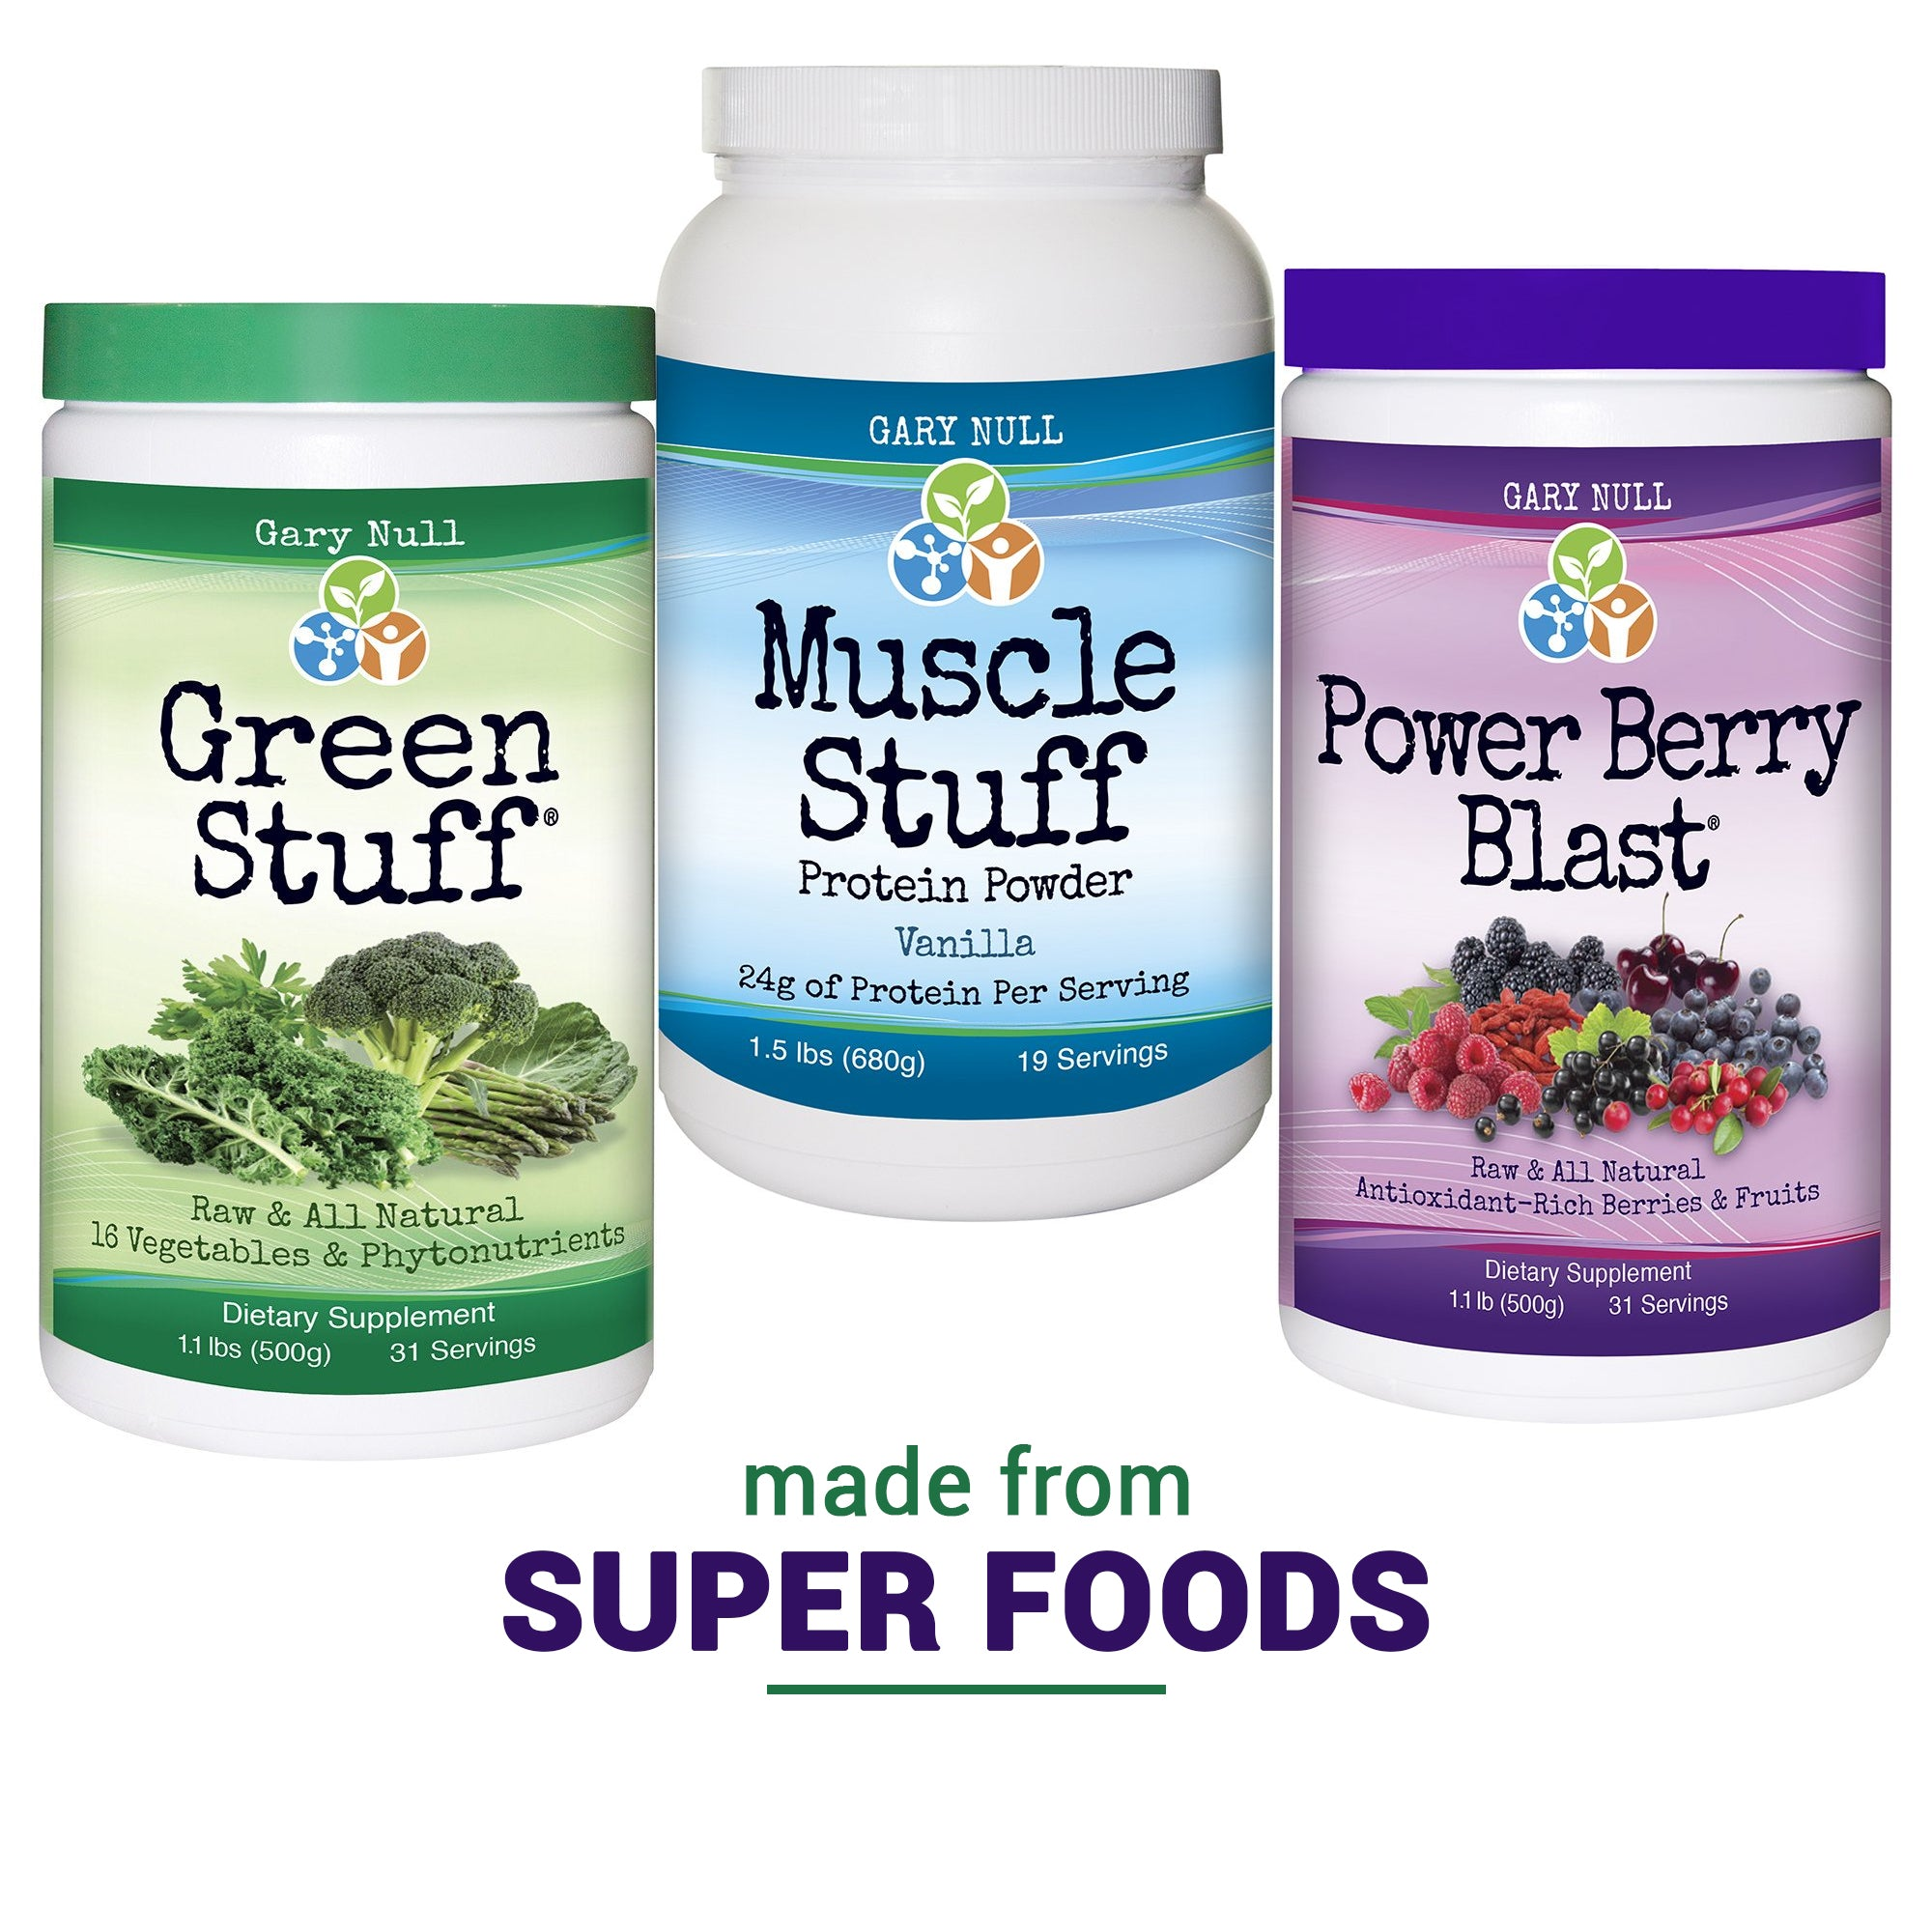 Super Foods: What are they & Why you need them?